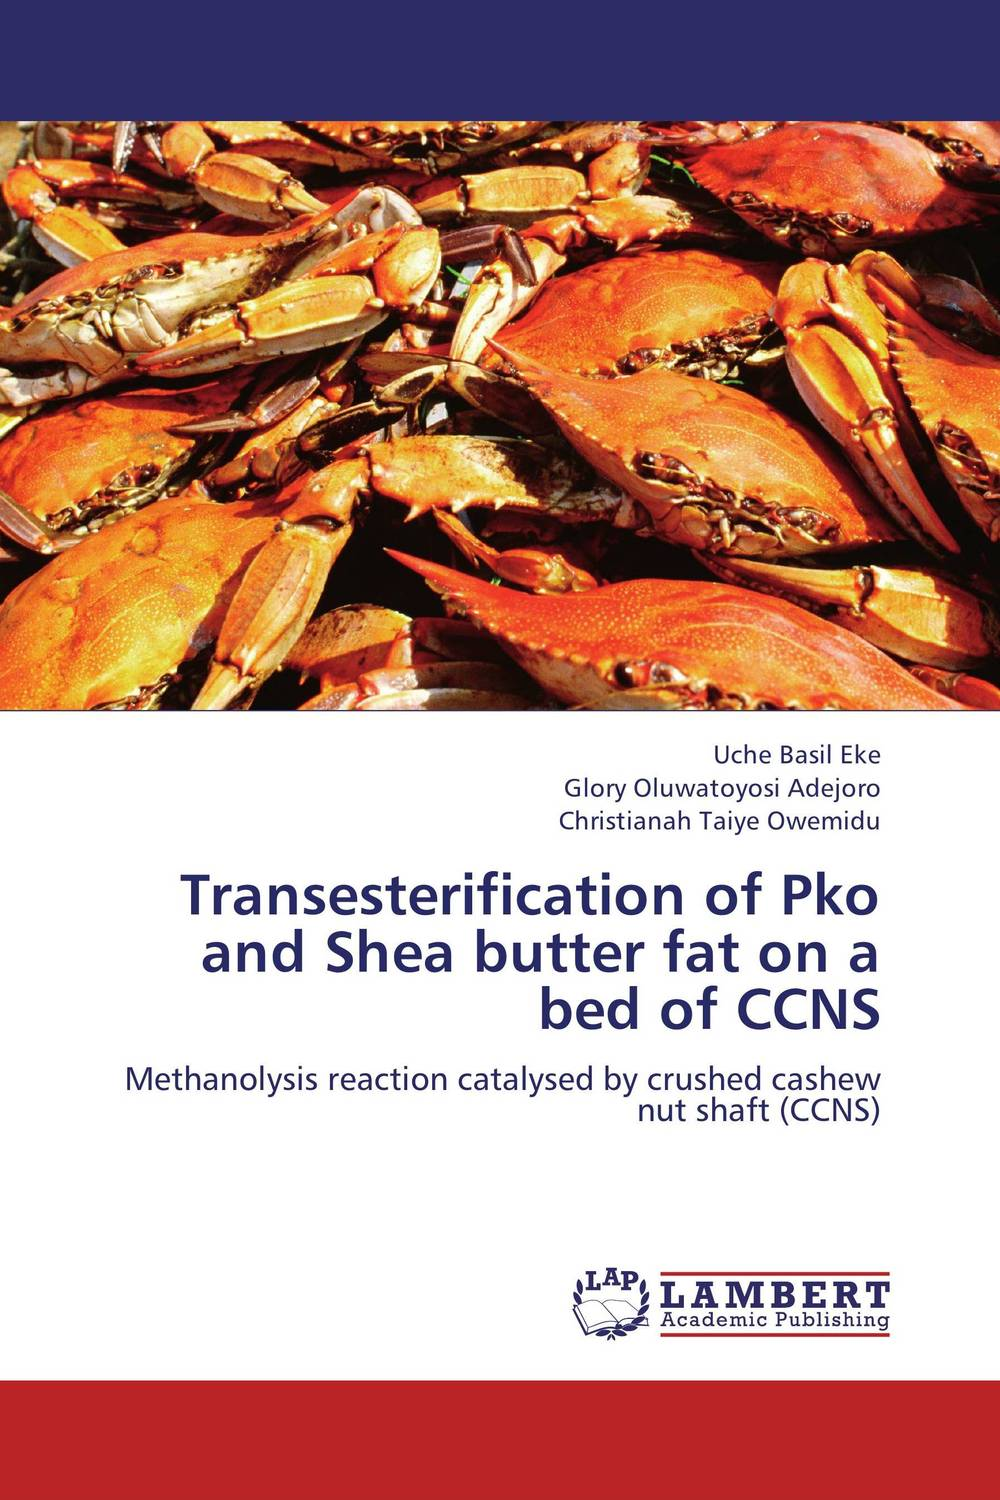 Transesterification of Pko and Shea butter fat on a bed of CCNS abdul rauf yussif and seidu al hassan entrepreneurial capabilities of shea butter processors in ghana